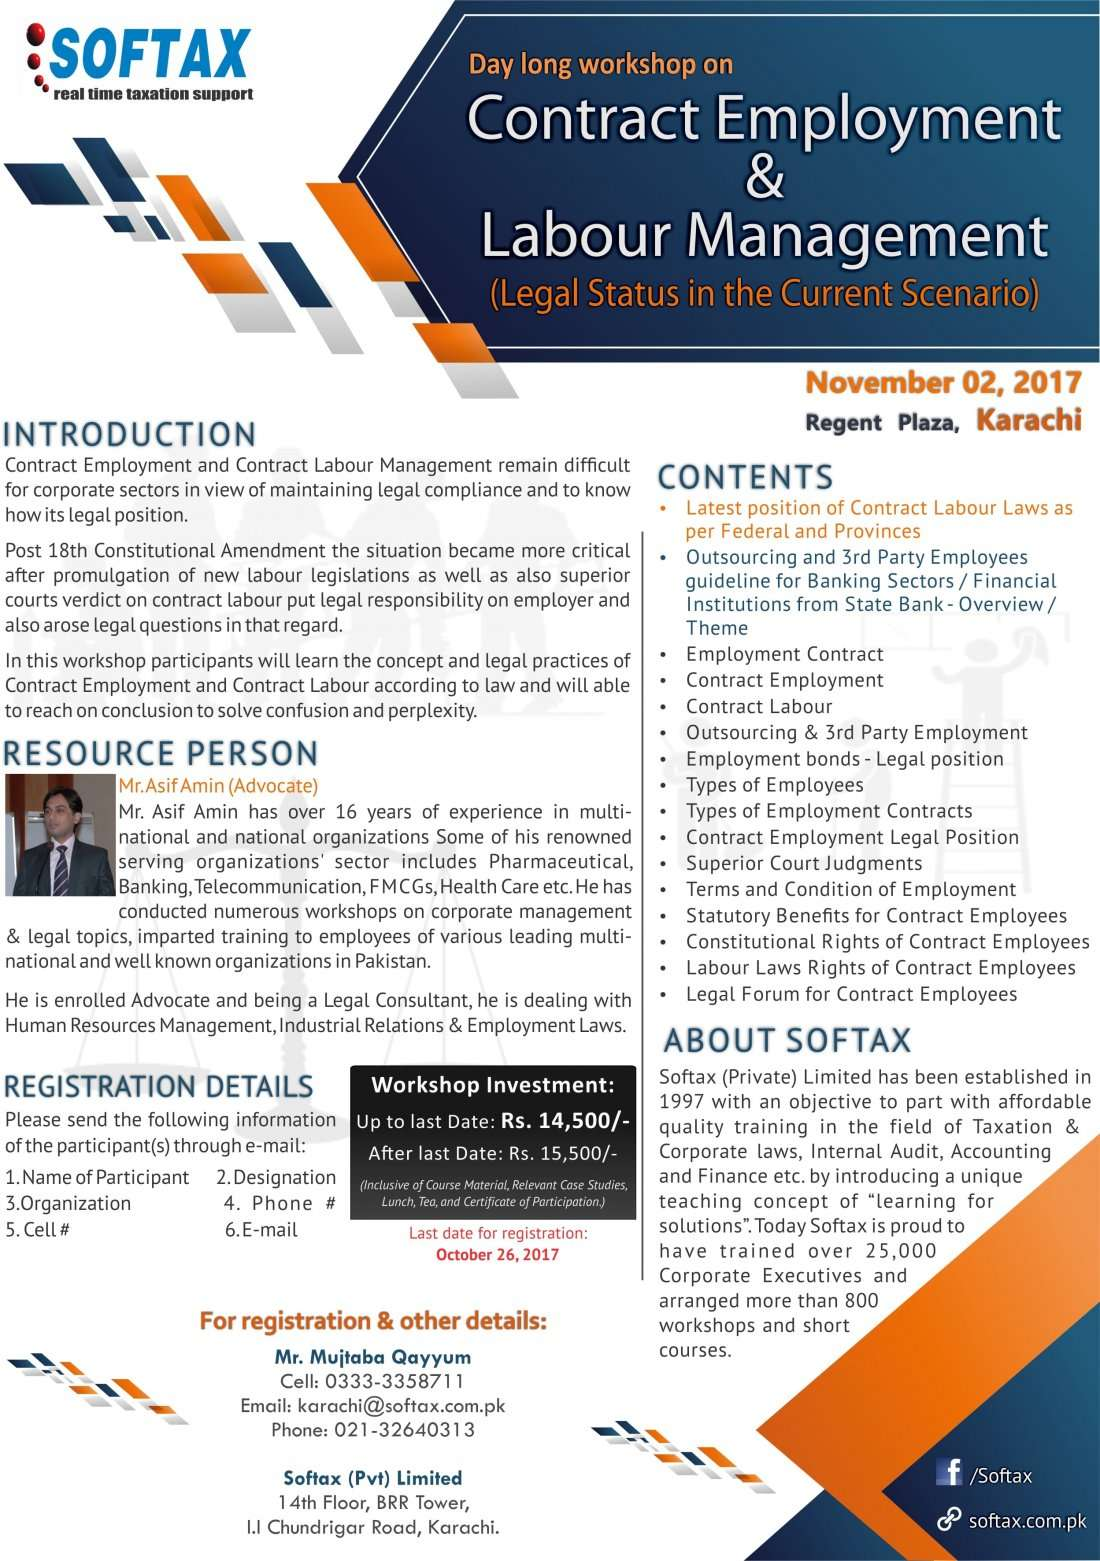 Workshop on Contract Employment & Labour Management (Legal Status in the Current Scenario)